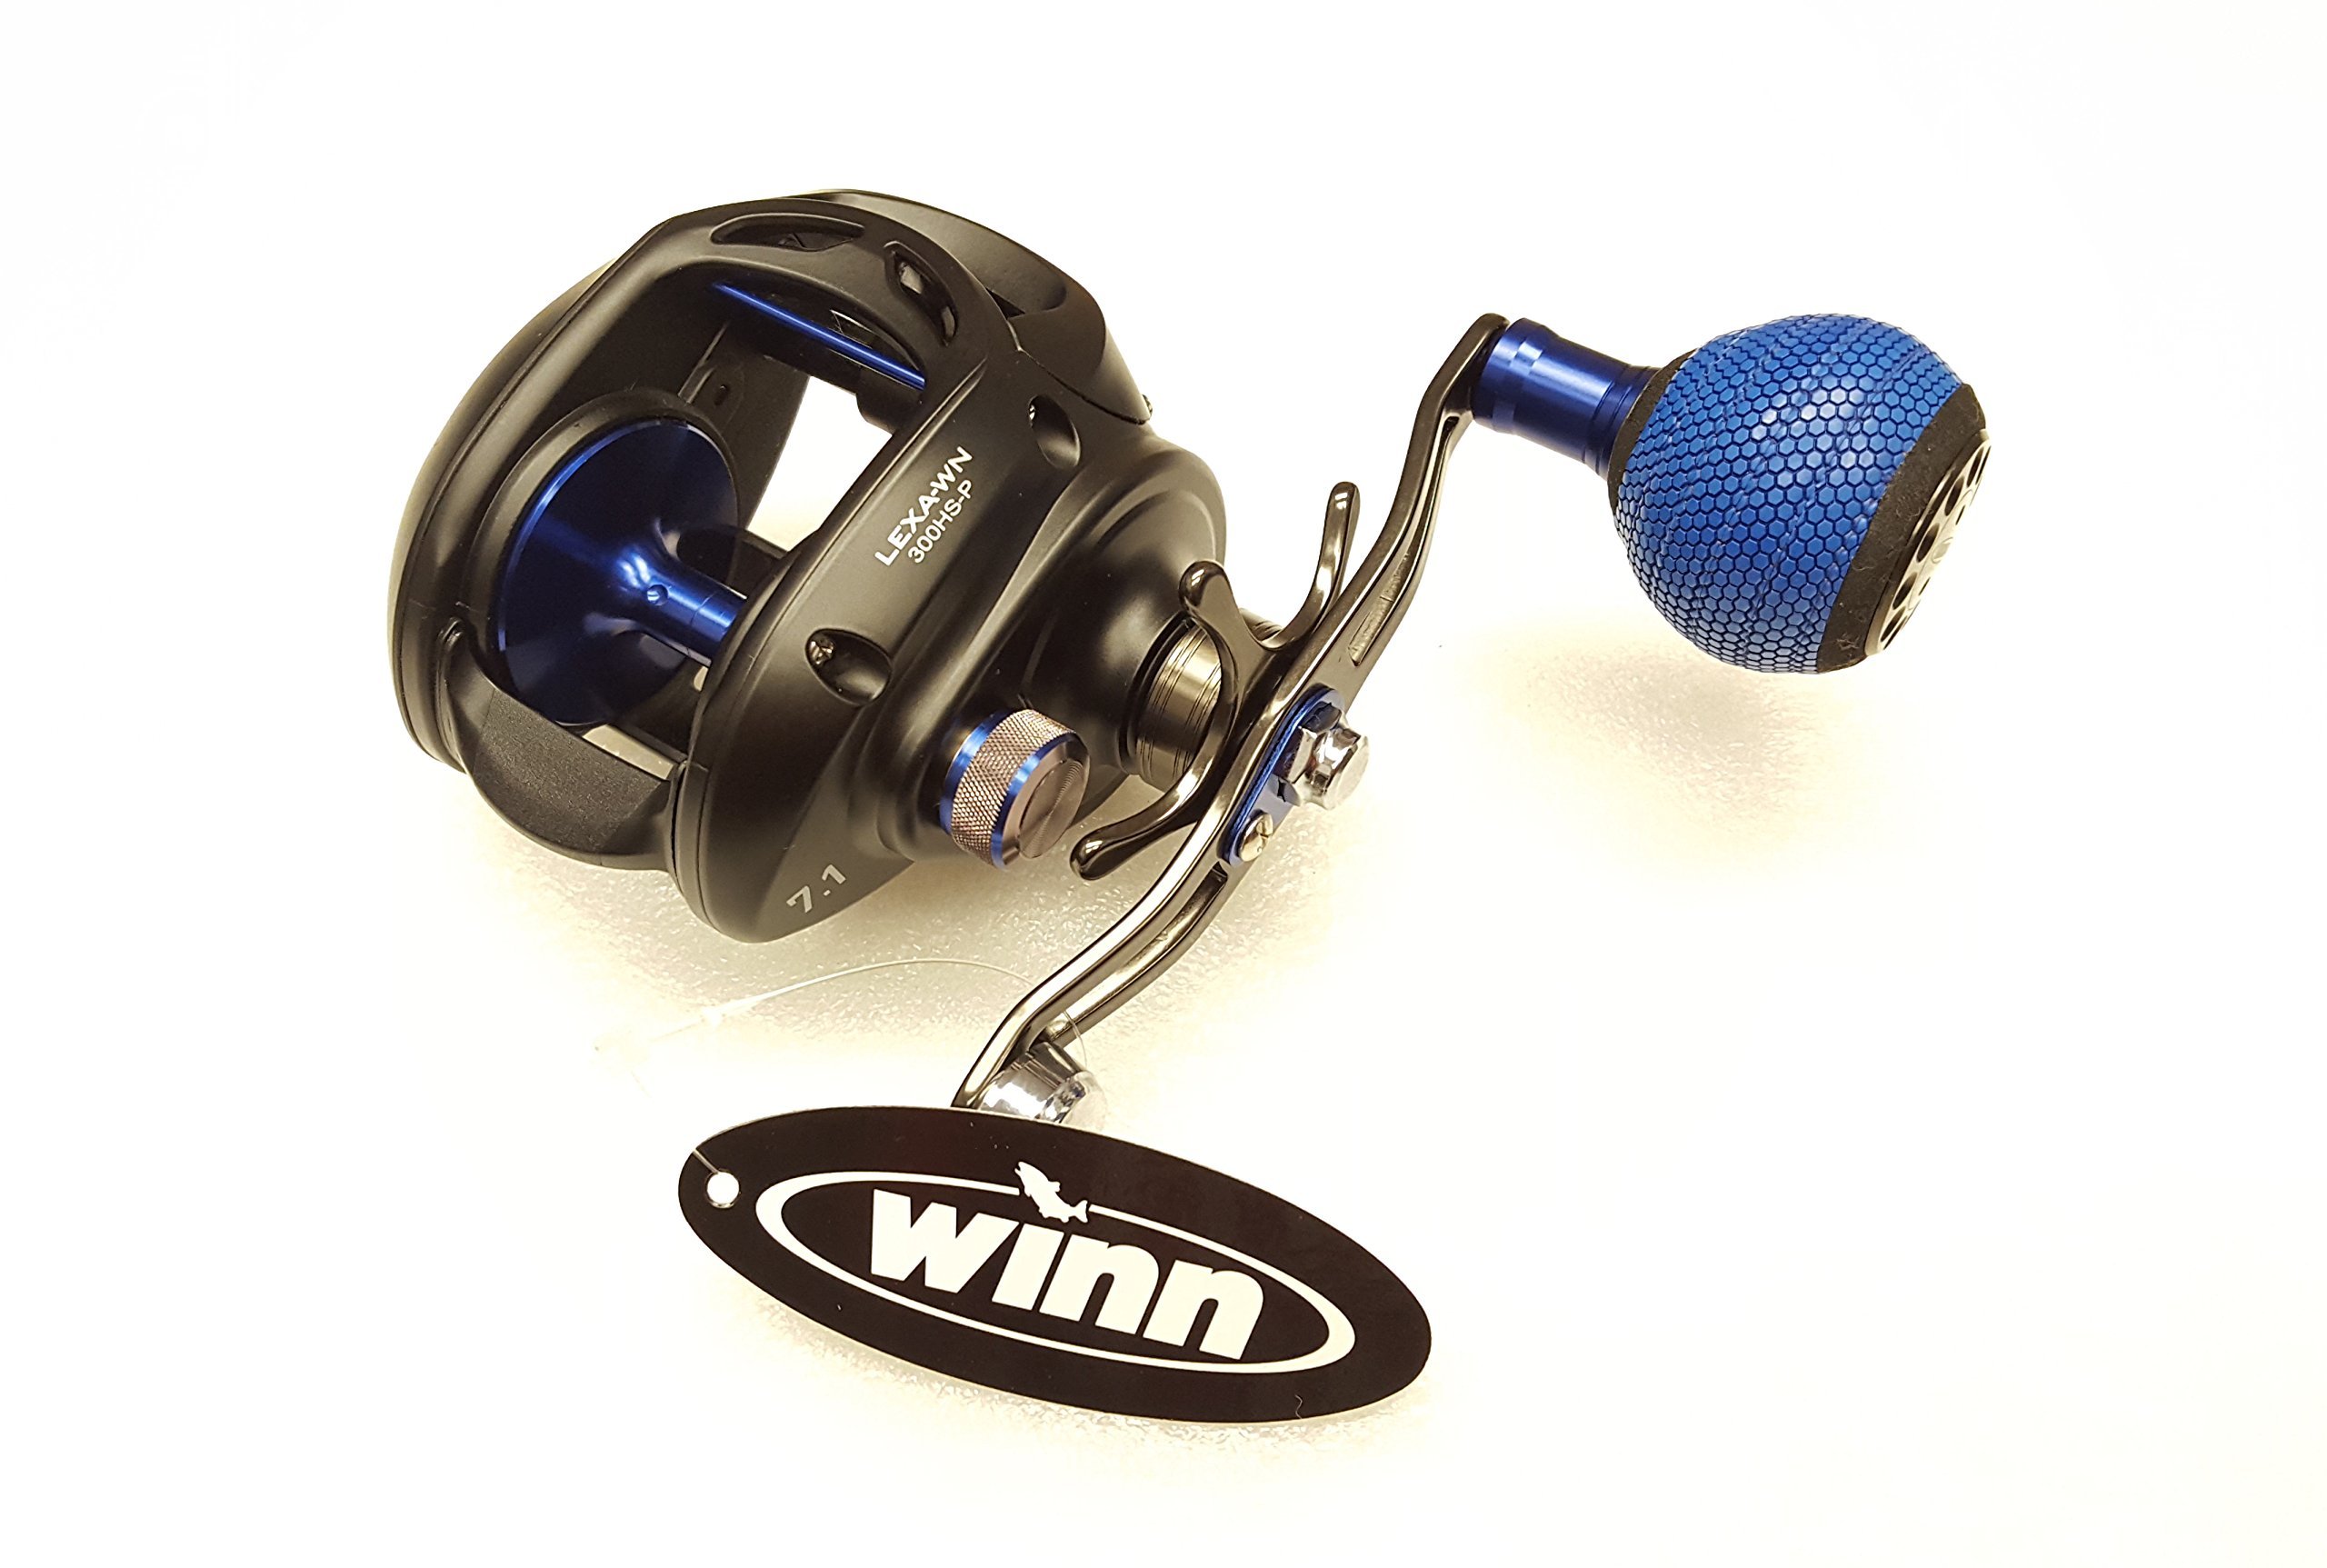 Daiwa LEXA TYPE-WN 7.1:1 Baitcast Right Hand Fishing Reel w/ Power Handle - LEXA-WN300HS-P